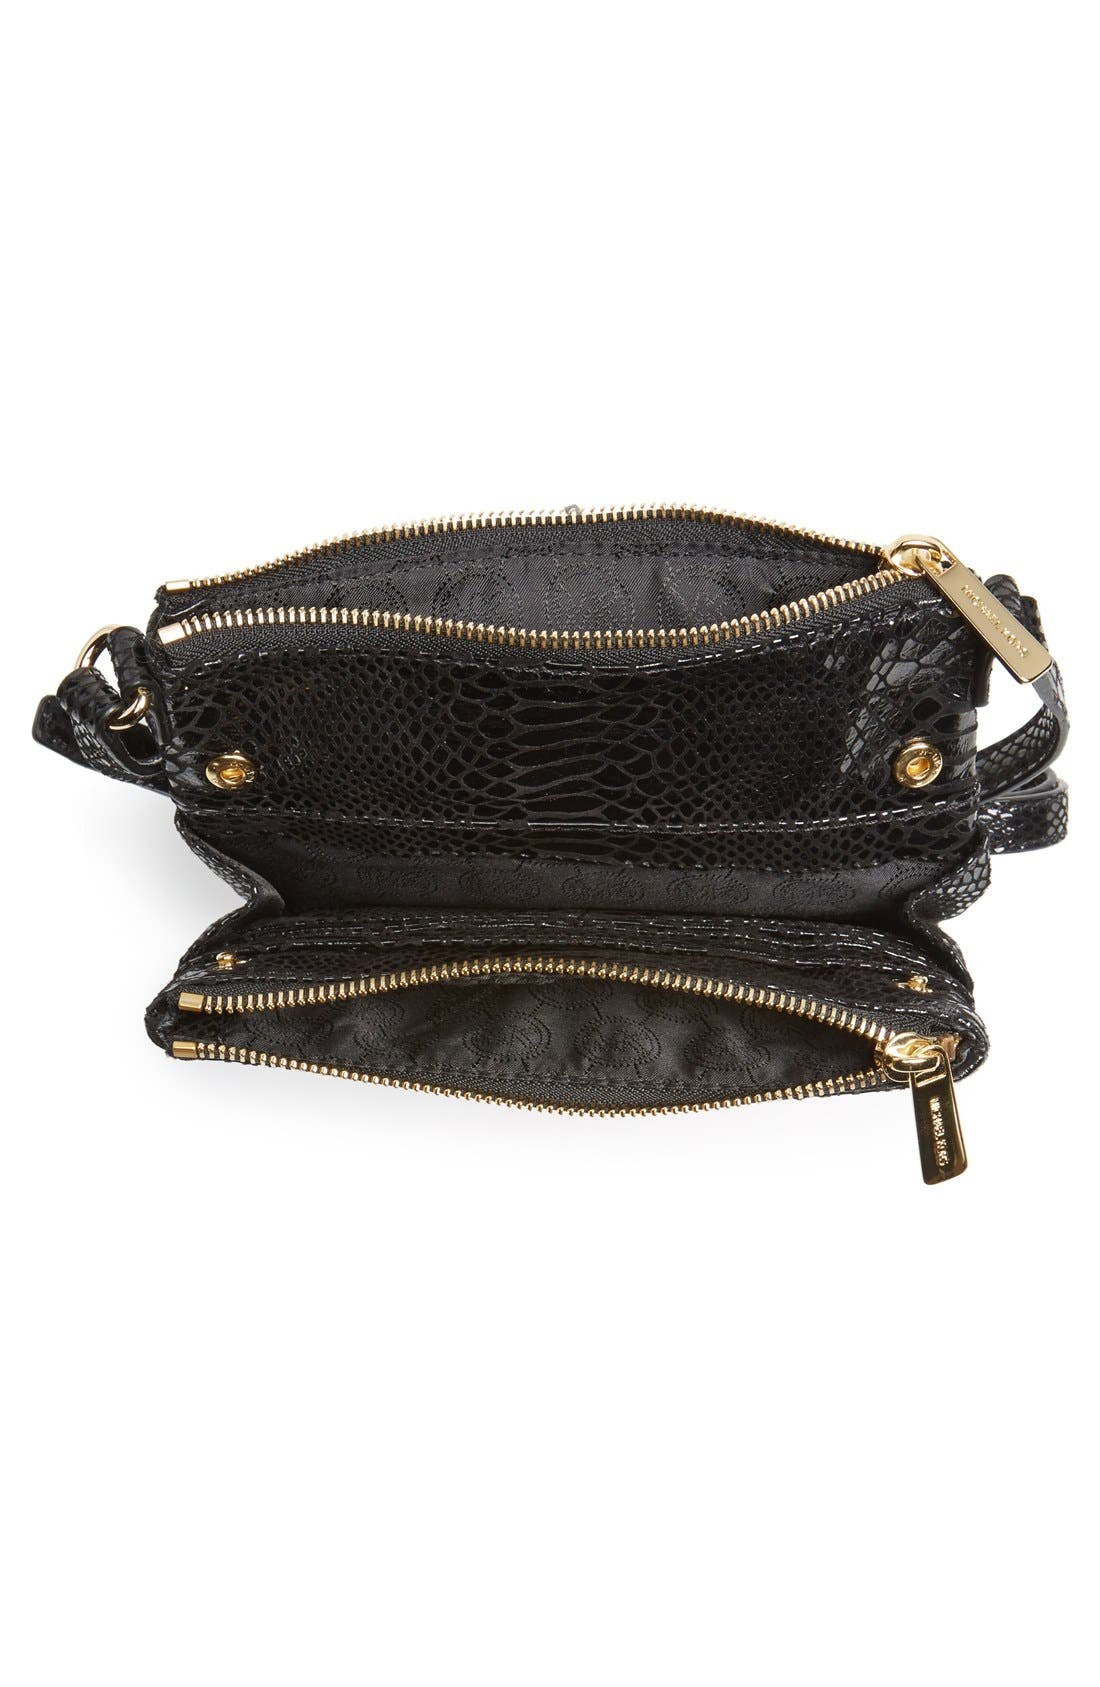 Alternate Image 3  - MICHAEL Michael Kors 'Large Fulton' Embossed Patent Crossbody Bag